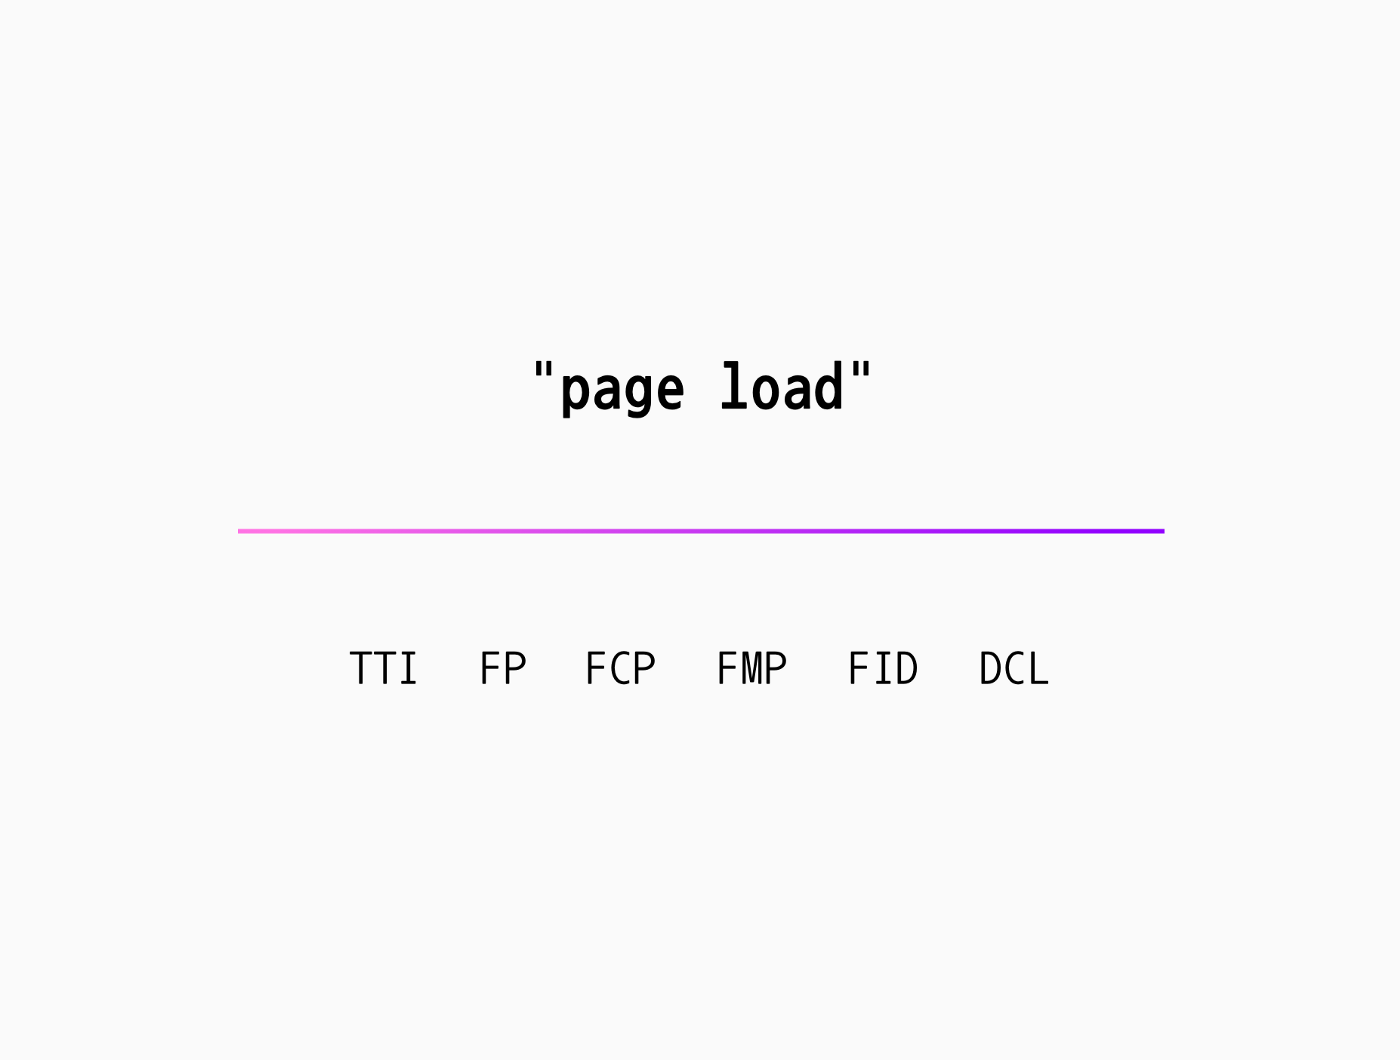 """A text graphic of """"page load"""" with a purple gradient line and then several page load metrics: TTI, FP, FCP, FMP, FID, DCL."""